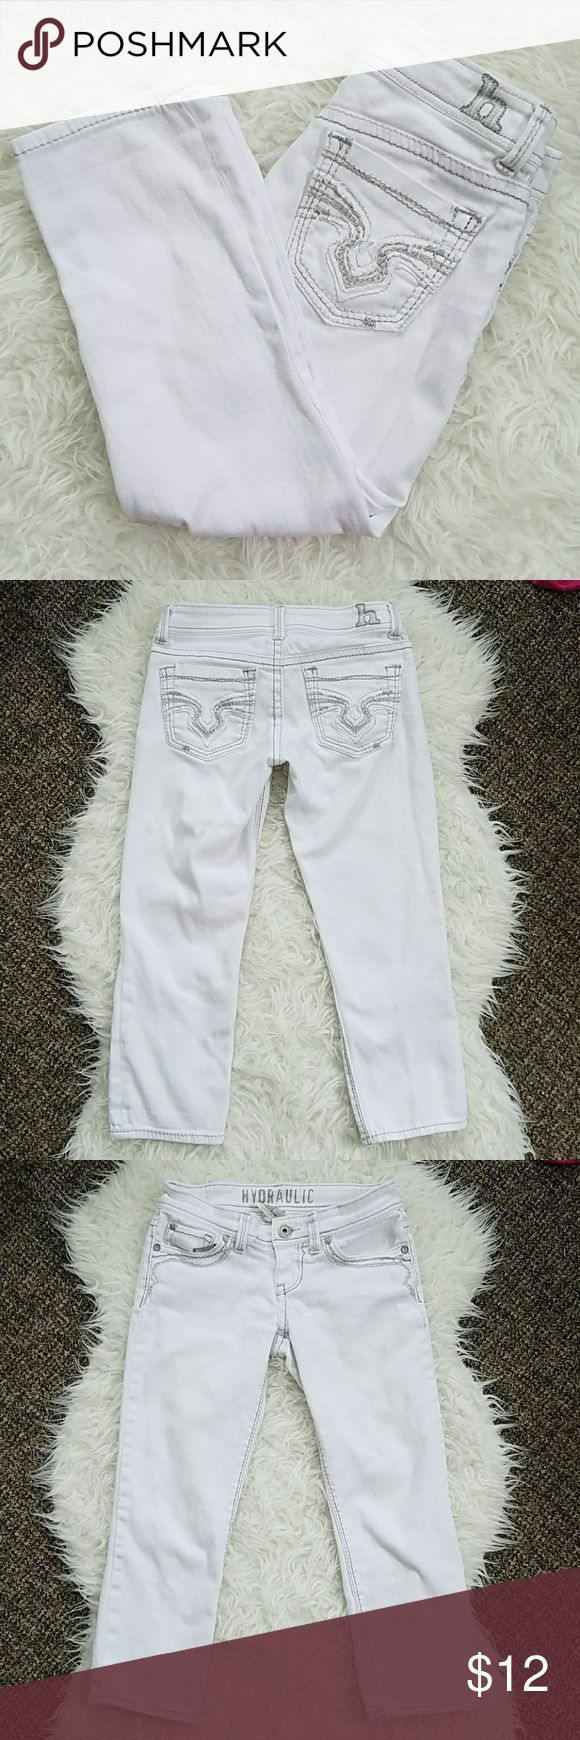 "Hydraulic Women's Capris Sz 3/4 White Cropped Pant Hydraulic Women's Capris Sz 3/4, White, Cropped Pants, One small imperfection (pictured).  Inseam: 21.5"" Rise: 6.5"" Waist: 28""  See my page for more!  Pet/smoke free home. Hydraulic Pants Capris"